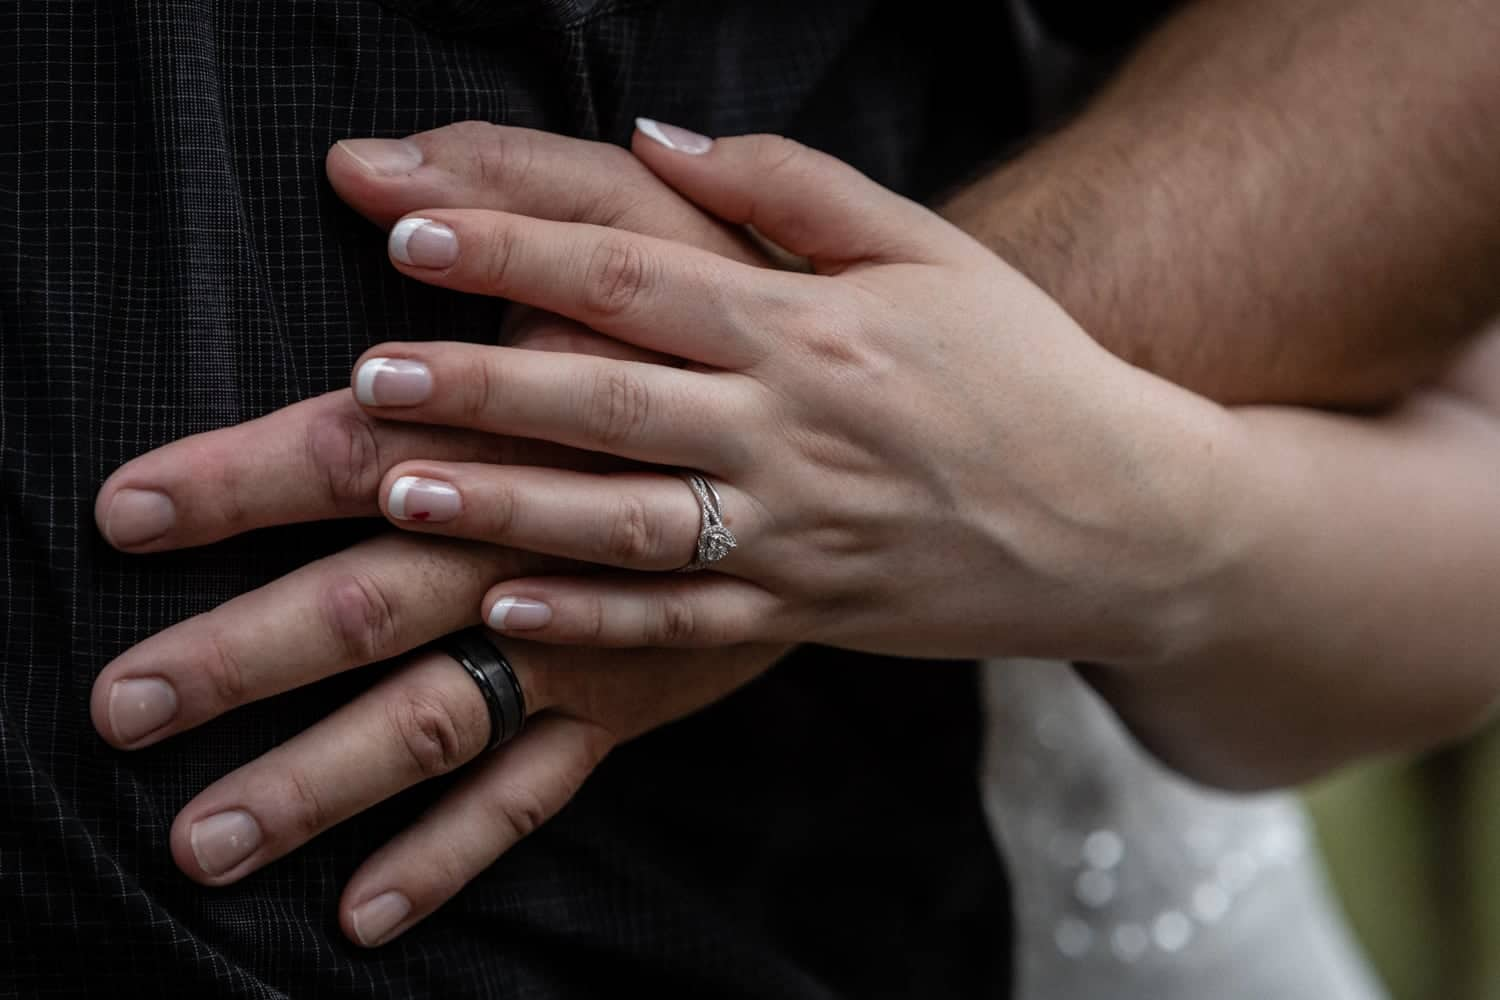 Photo of bride and groom's hands with wedding rings.